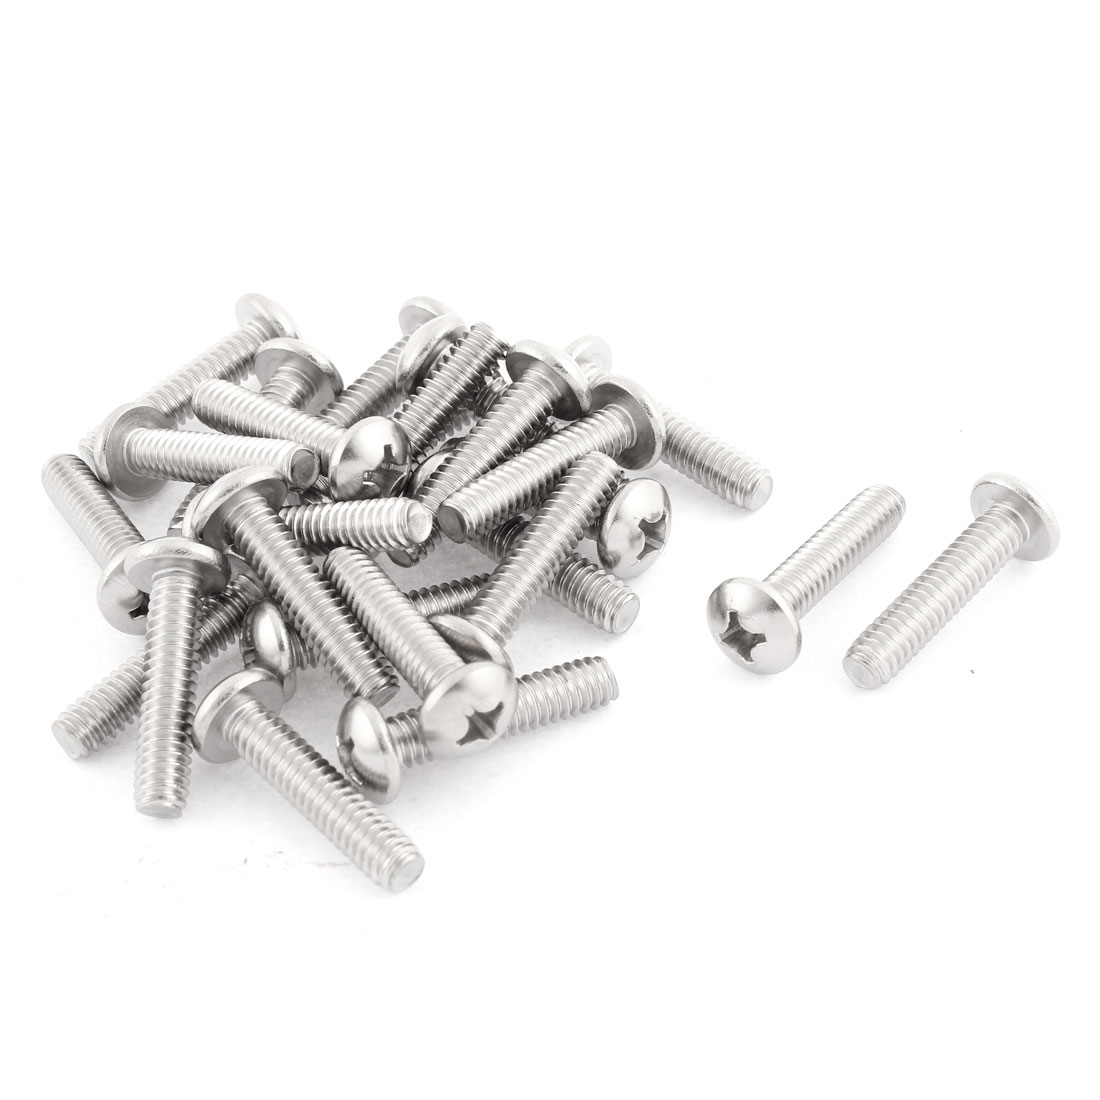 "25 Pcs 1/4""x20x1-1/8"" Stainless Steel Phillips Truss Head Screws Bolts 34mm Long"